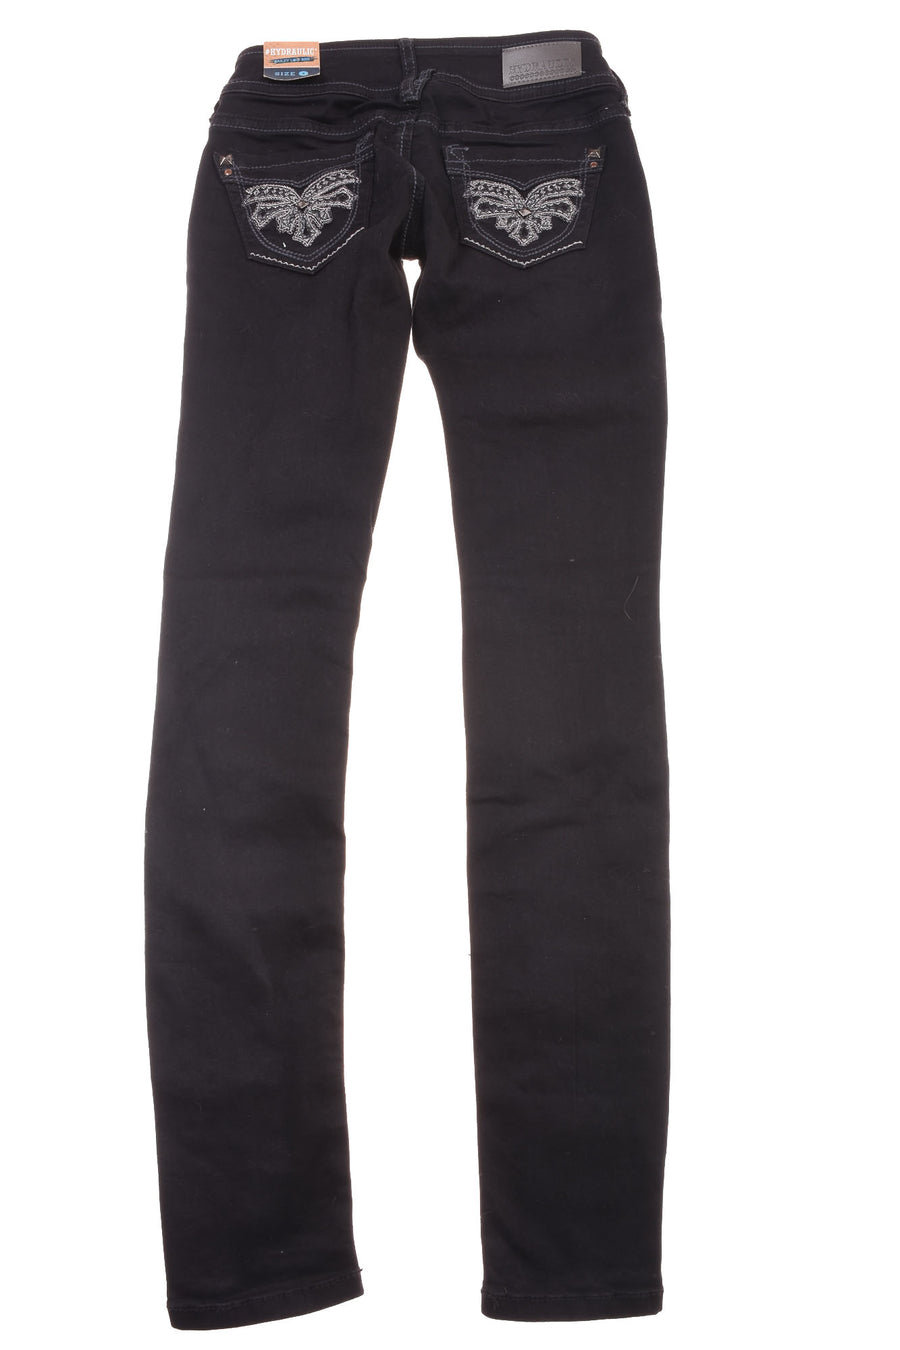 NEW Hydraulic Women's Pants 0 Black